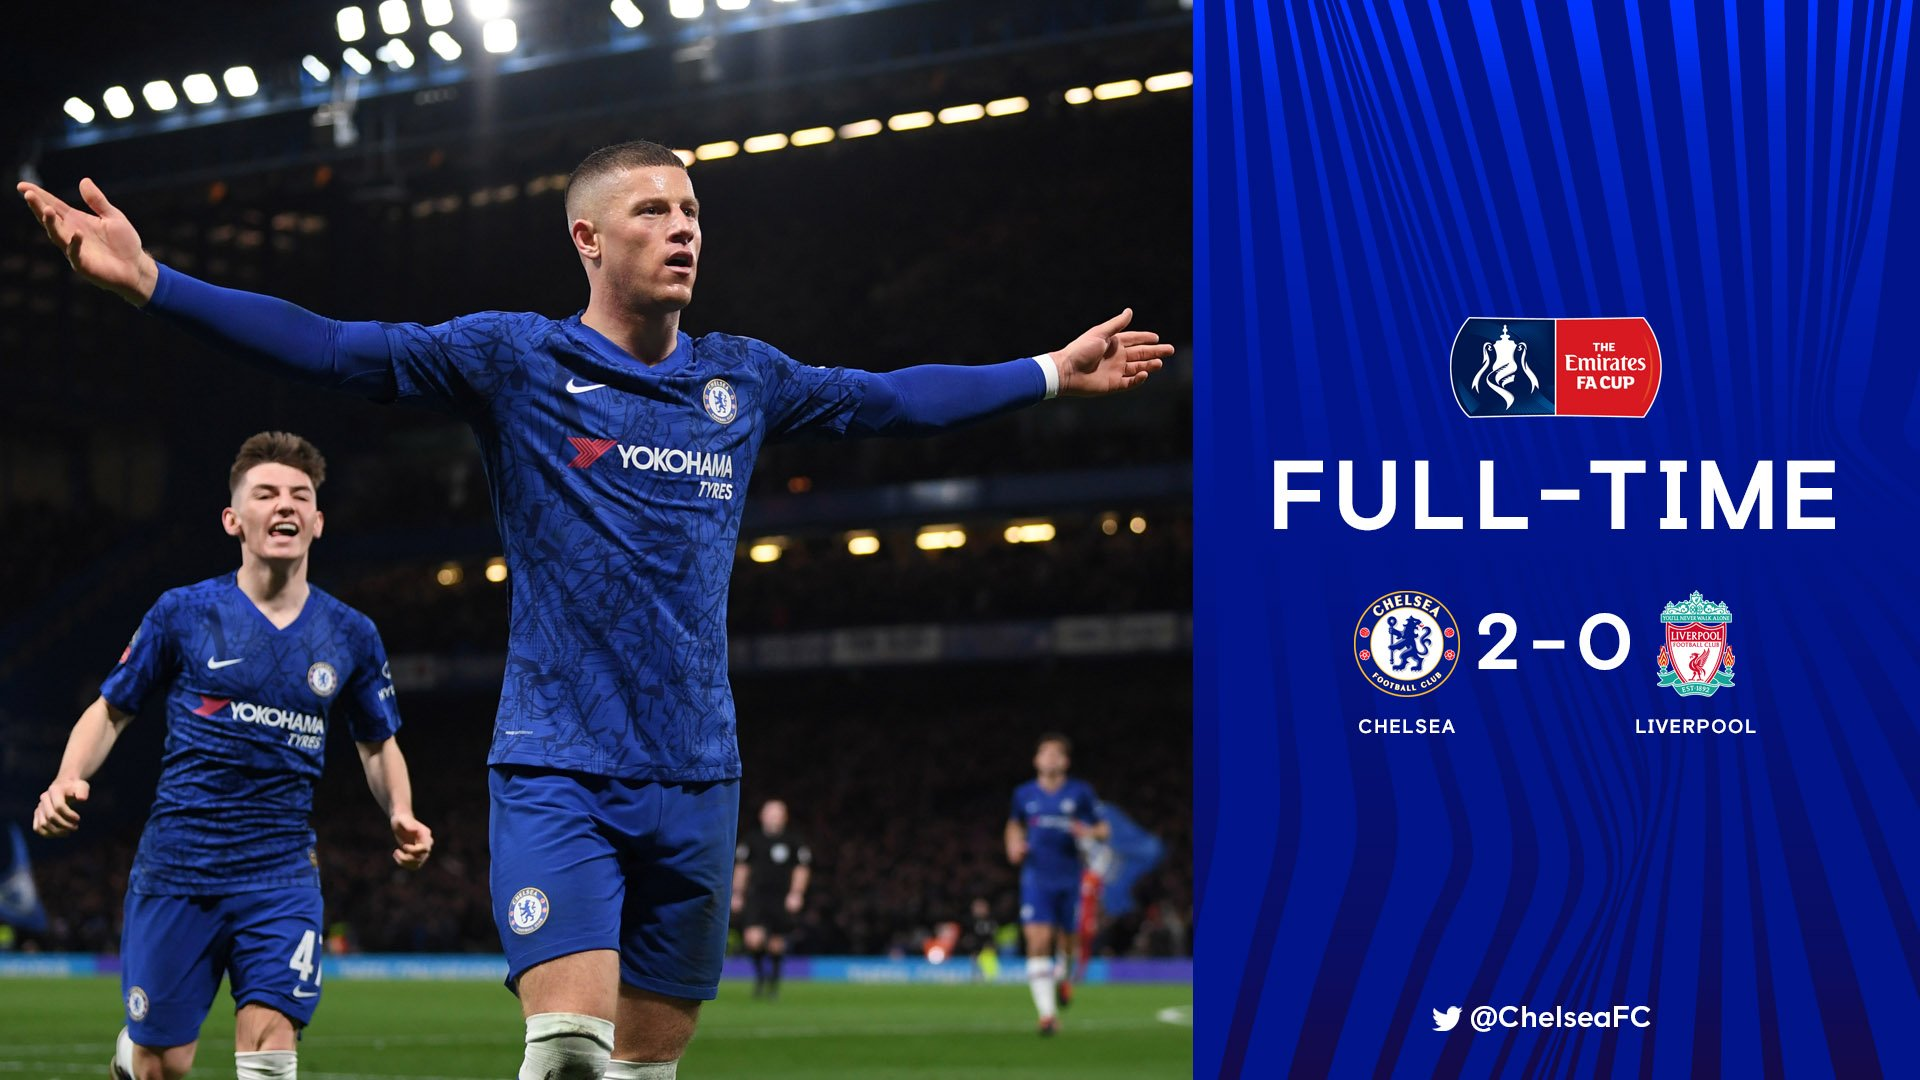 VIDEO: Chelsea 2–0 Liverpool – 2019/20 FA Cup Highlight